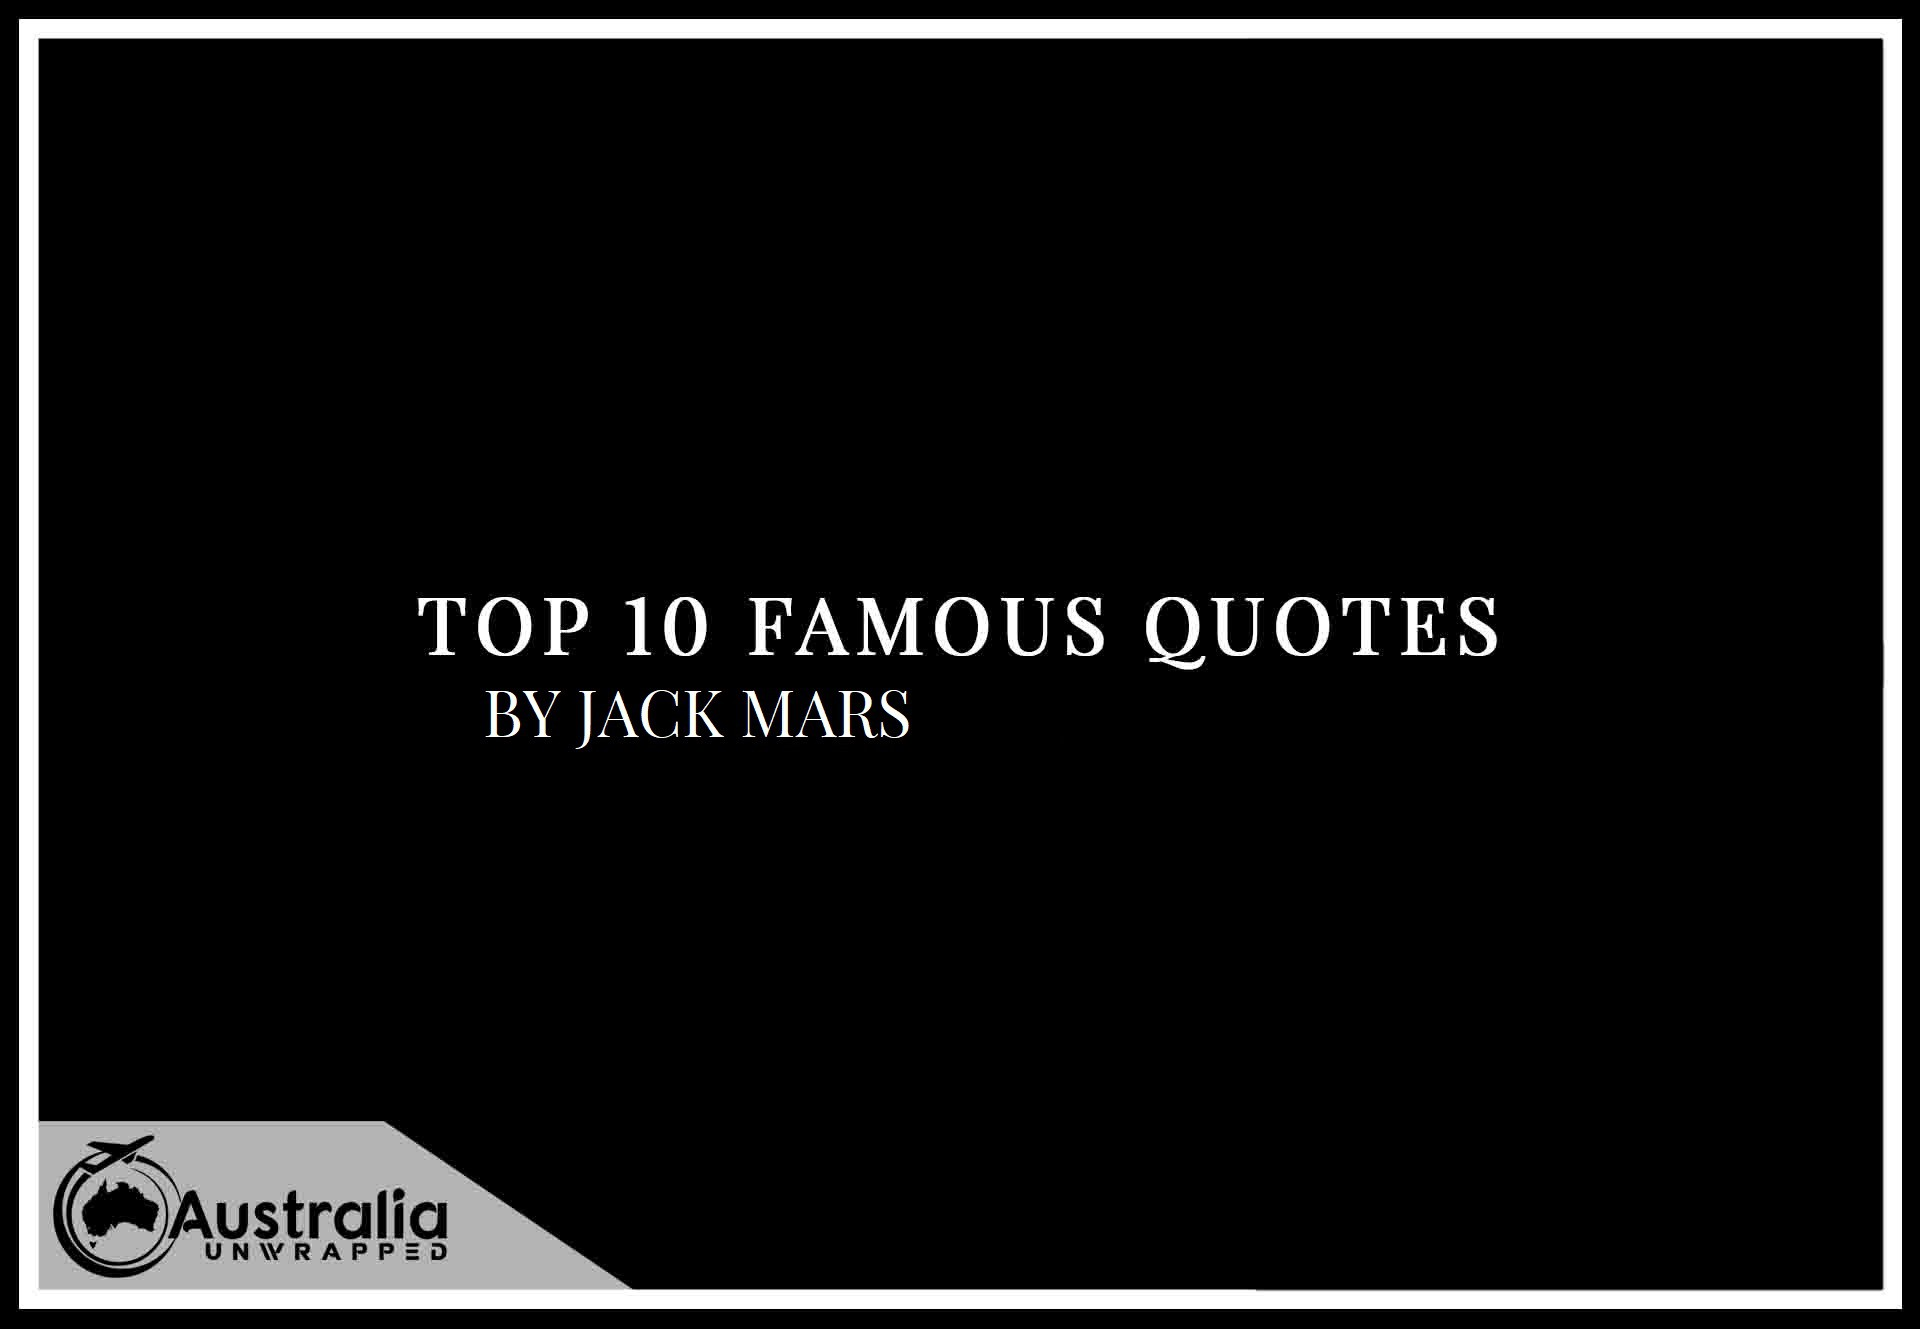 Top 10 Famous Quotes by Author Jack Mars